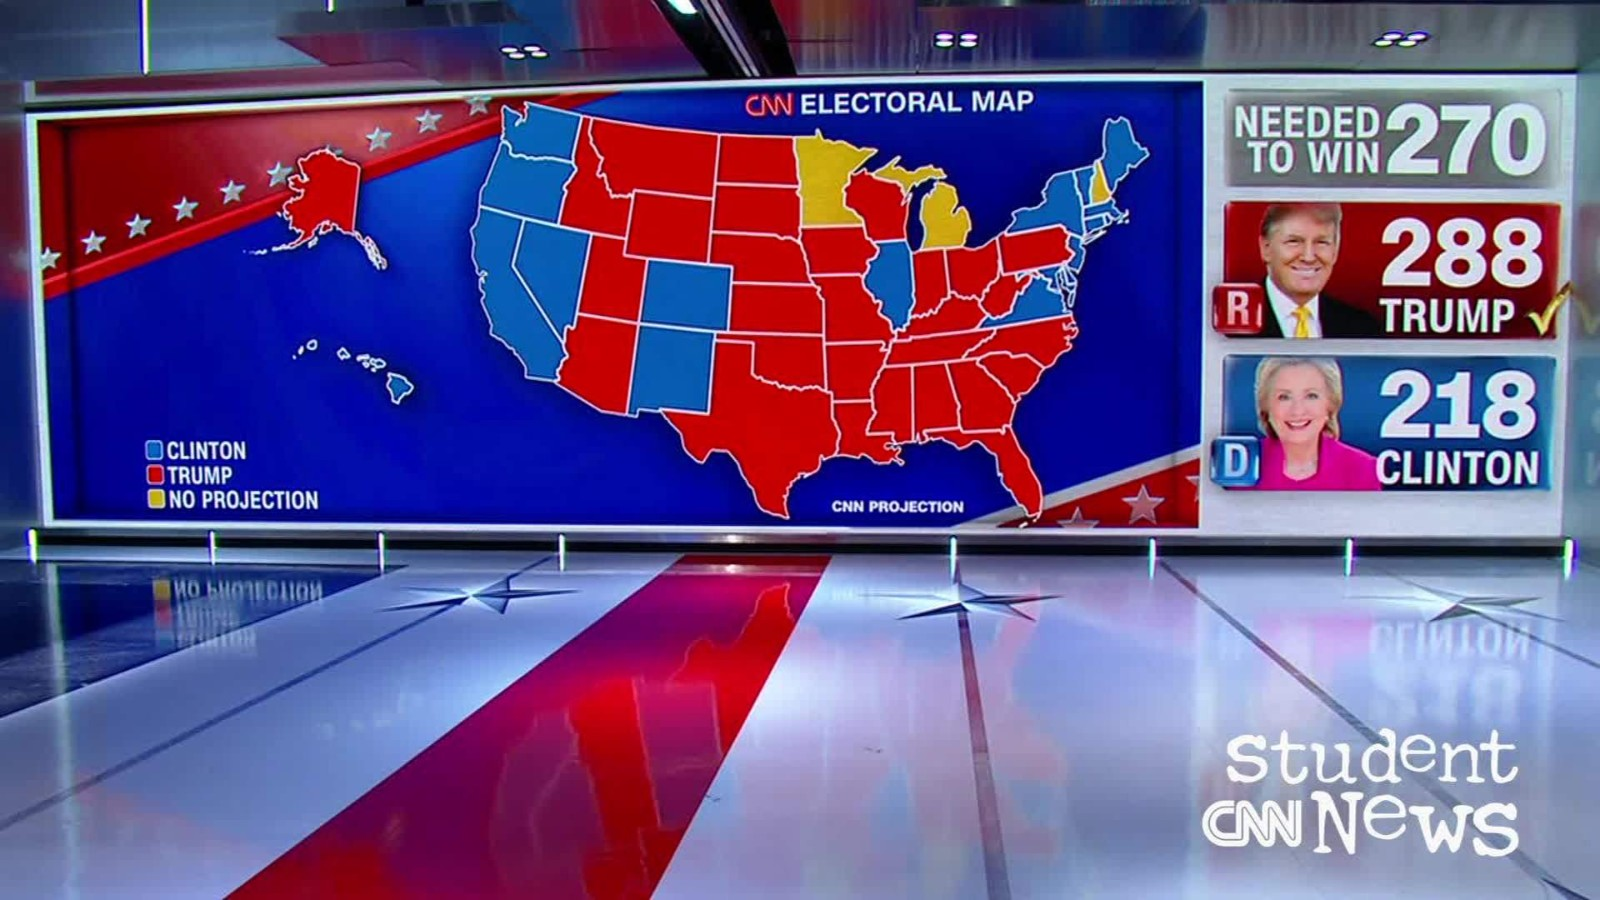 cnn projection map